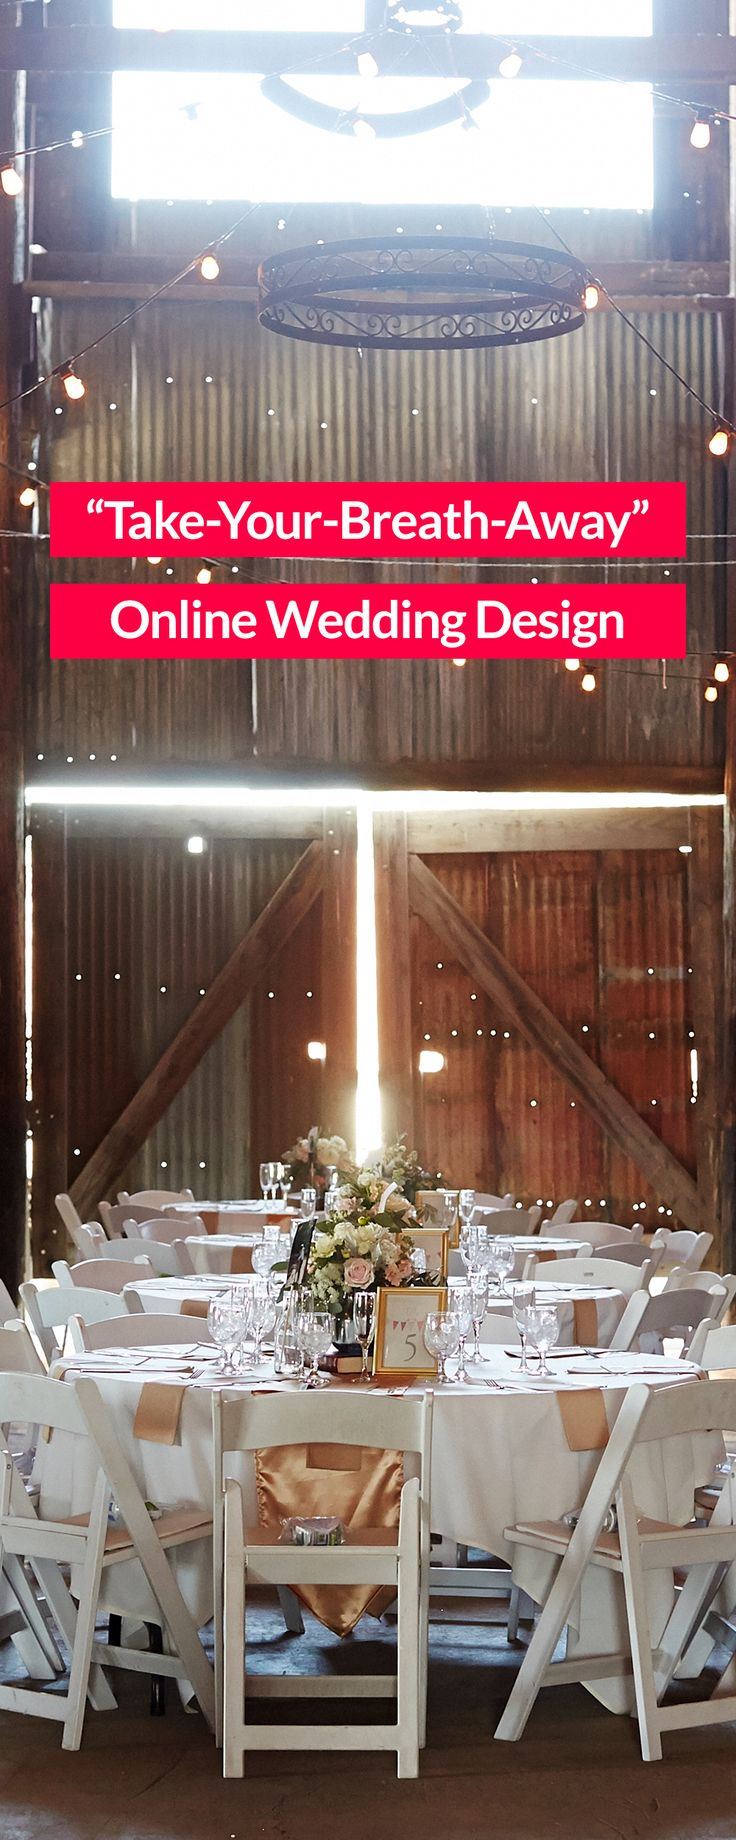 Exquisite wedding planning and design that fits your budget and style | 43Layers pairs you with top online wedding planners who bring all your big day details together with style, elegance and class.